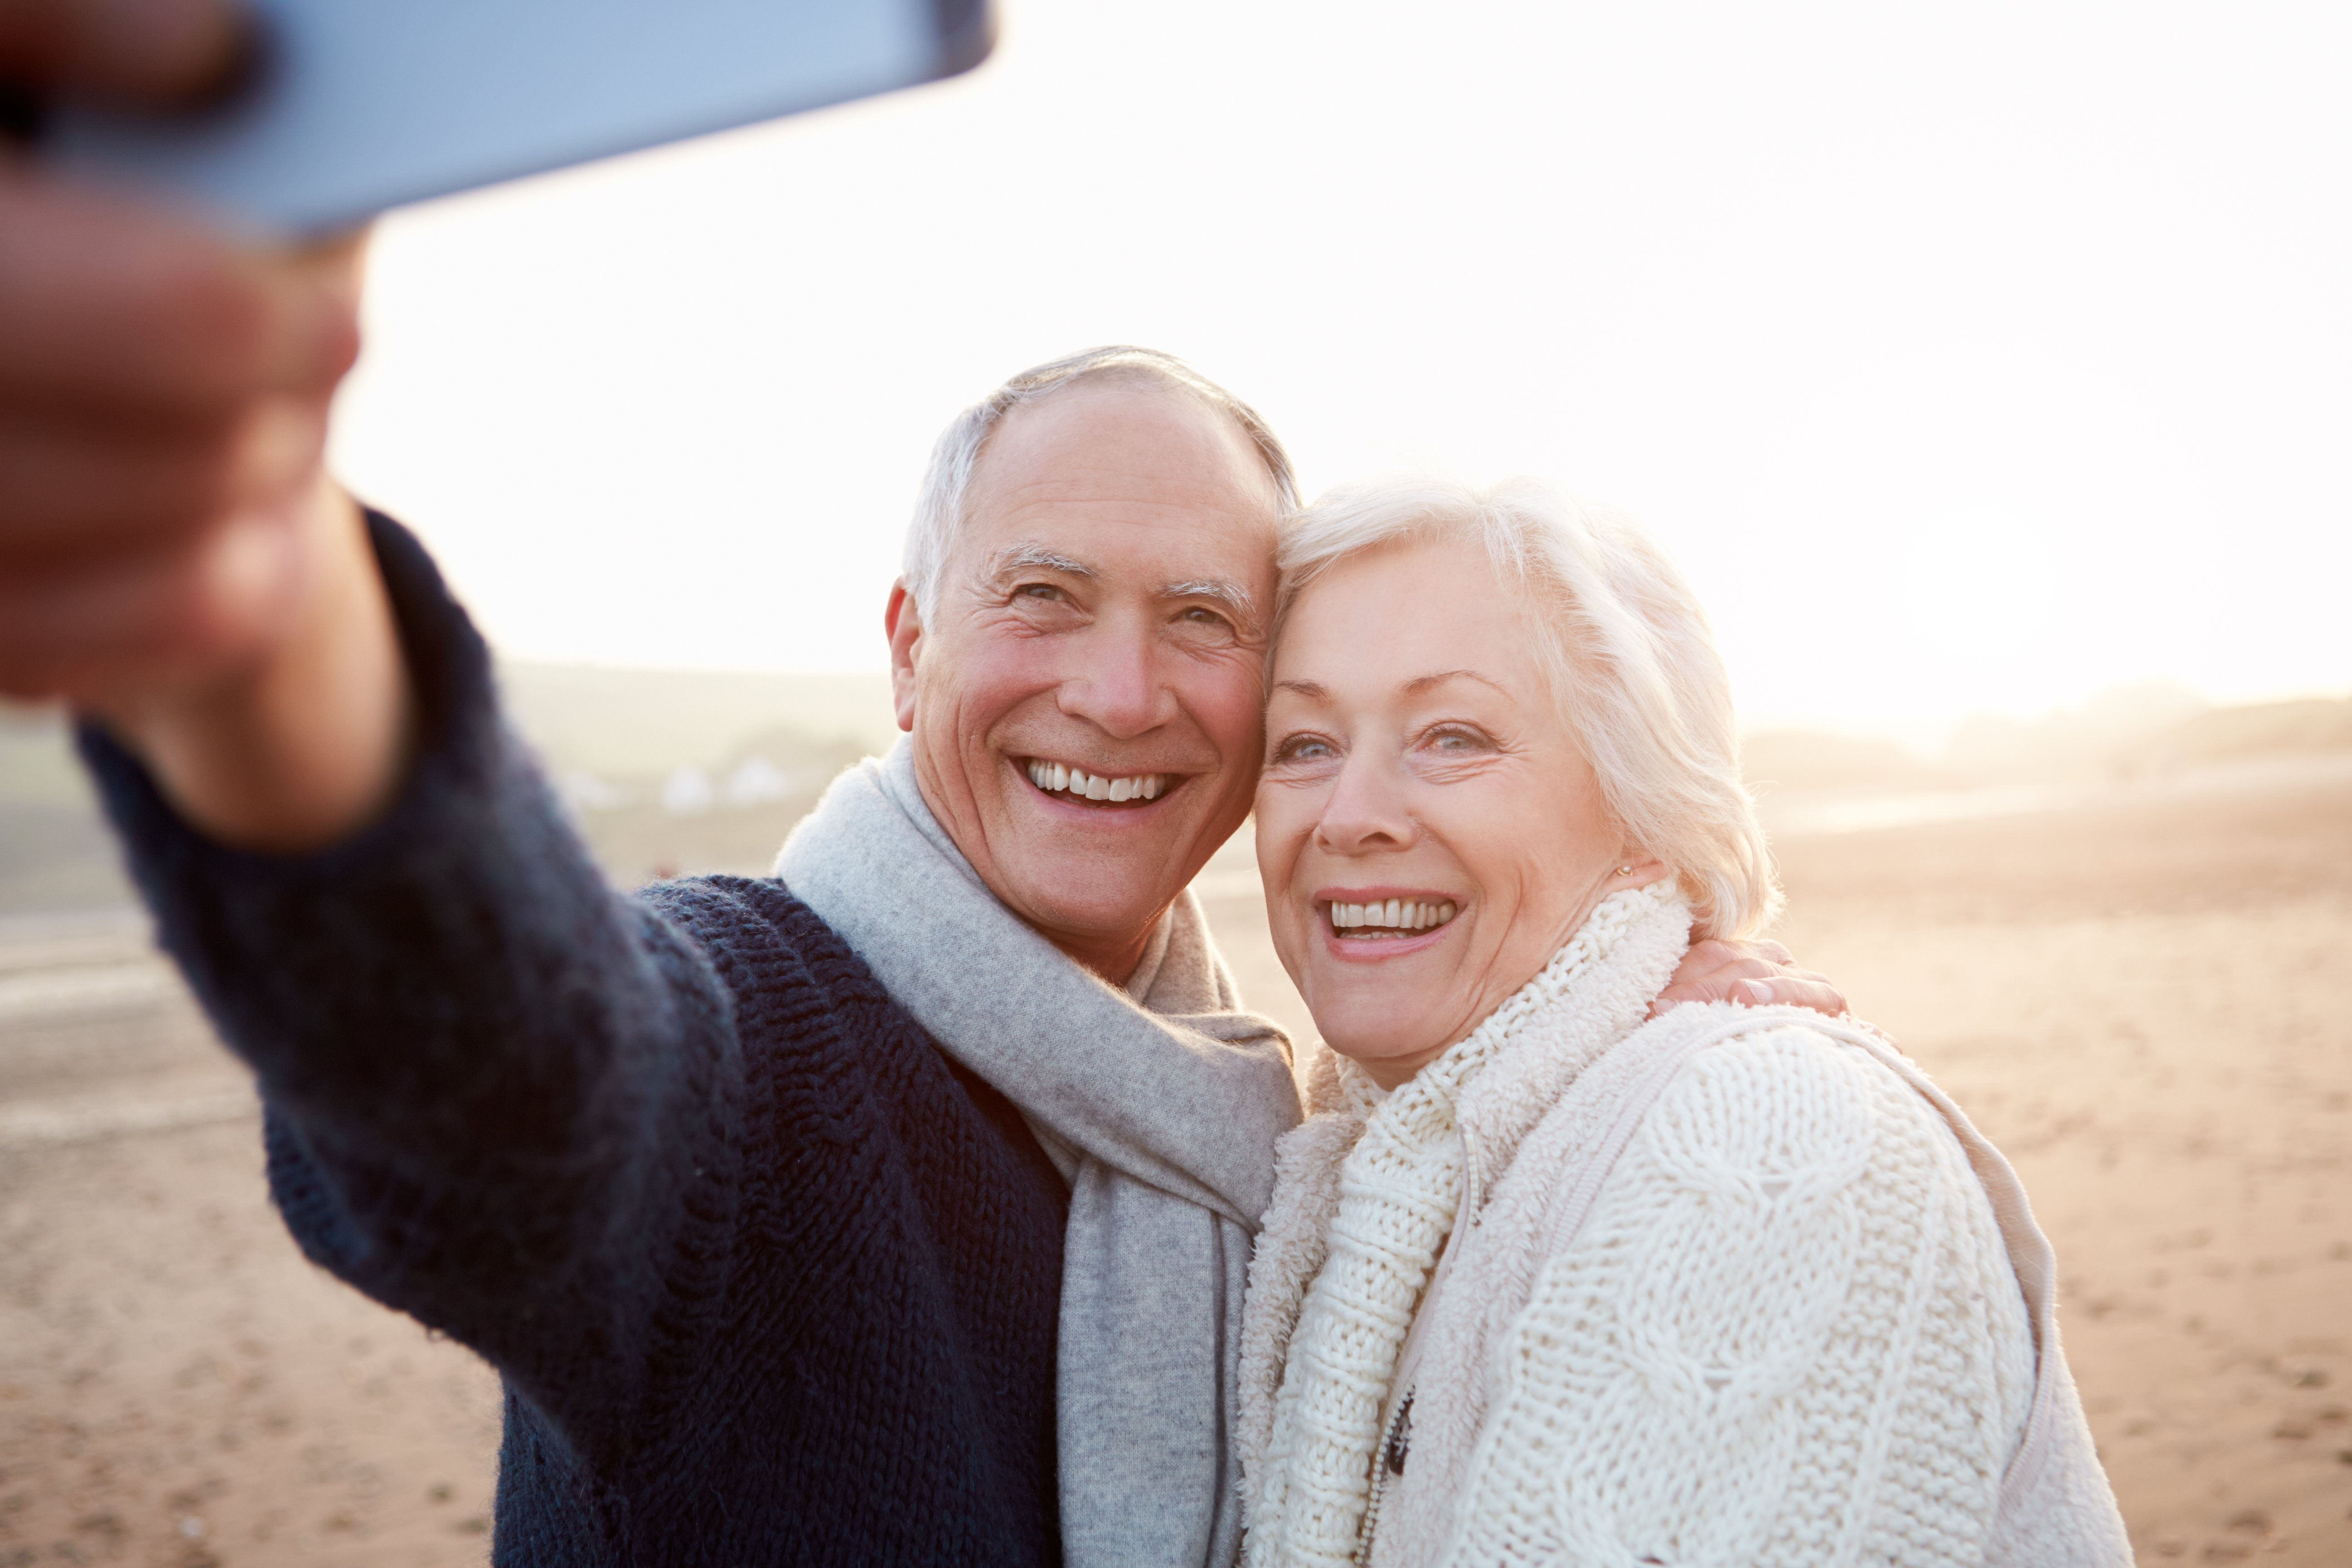 senior couple happy selfie instagram caption